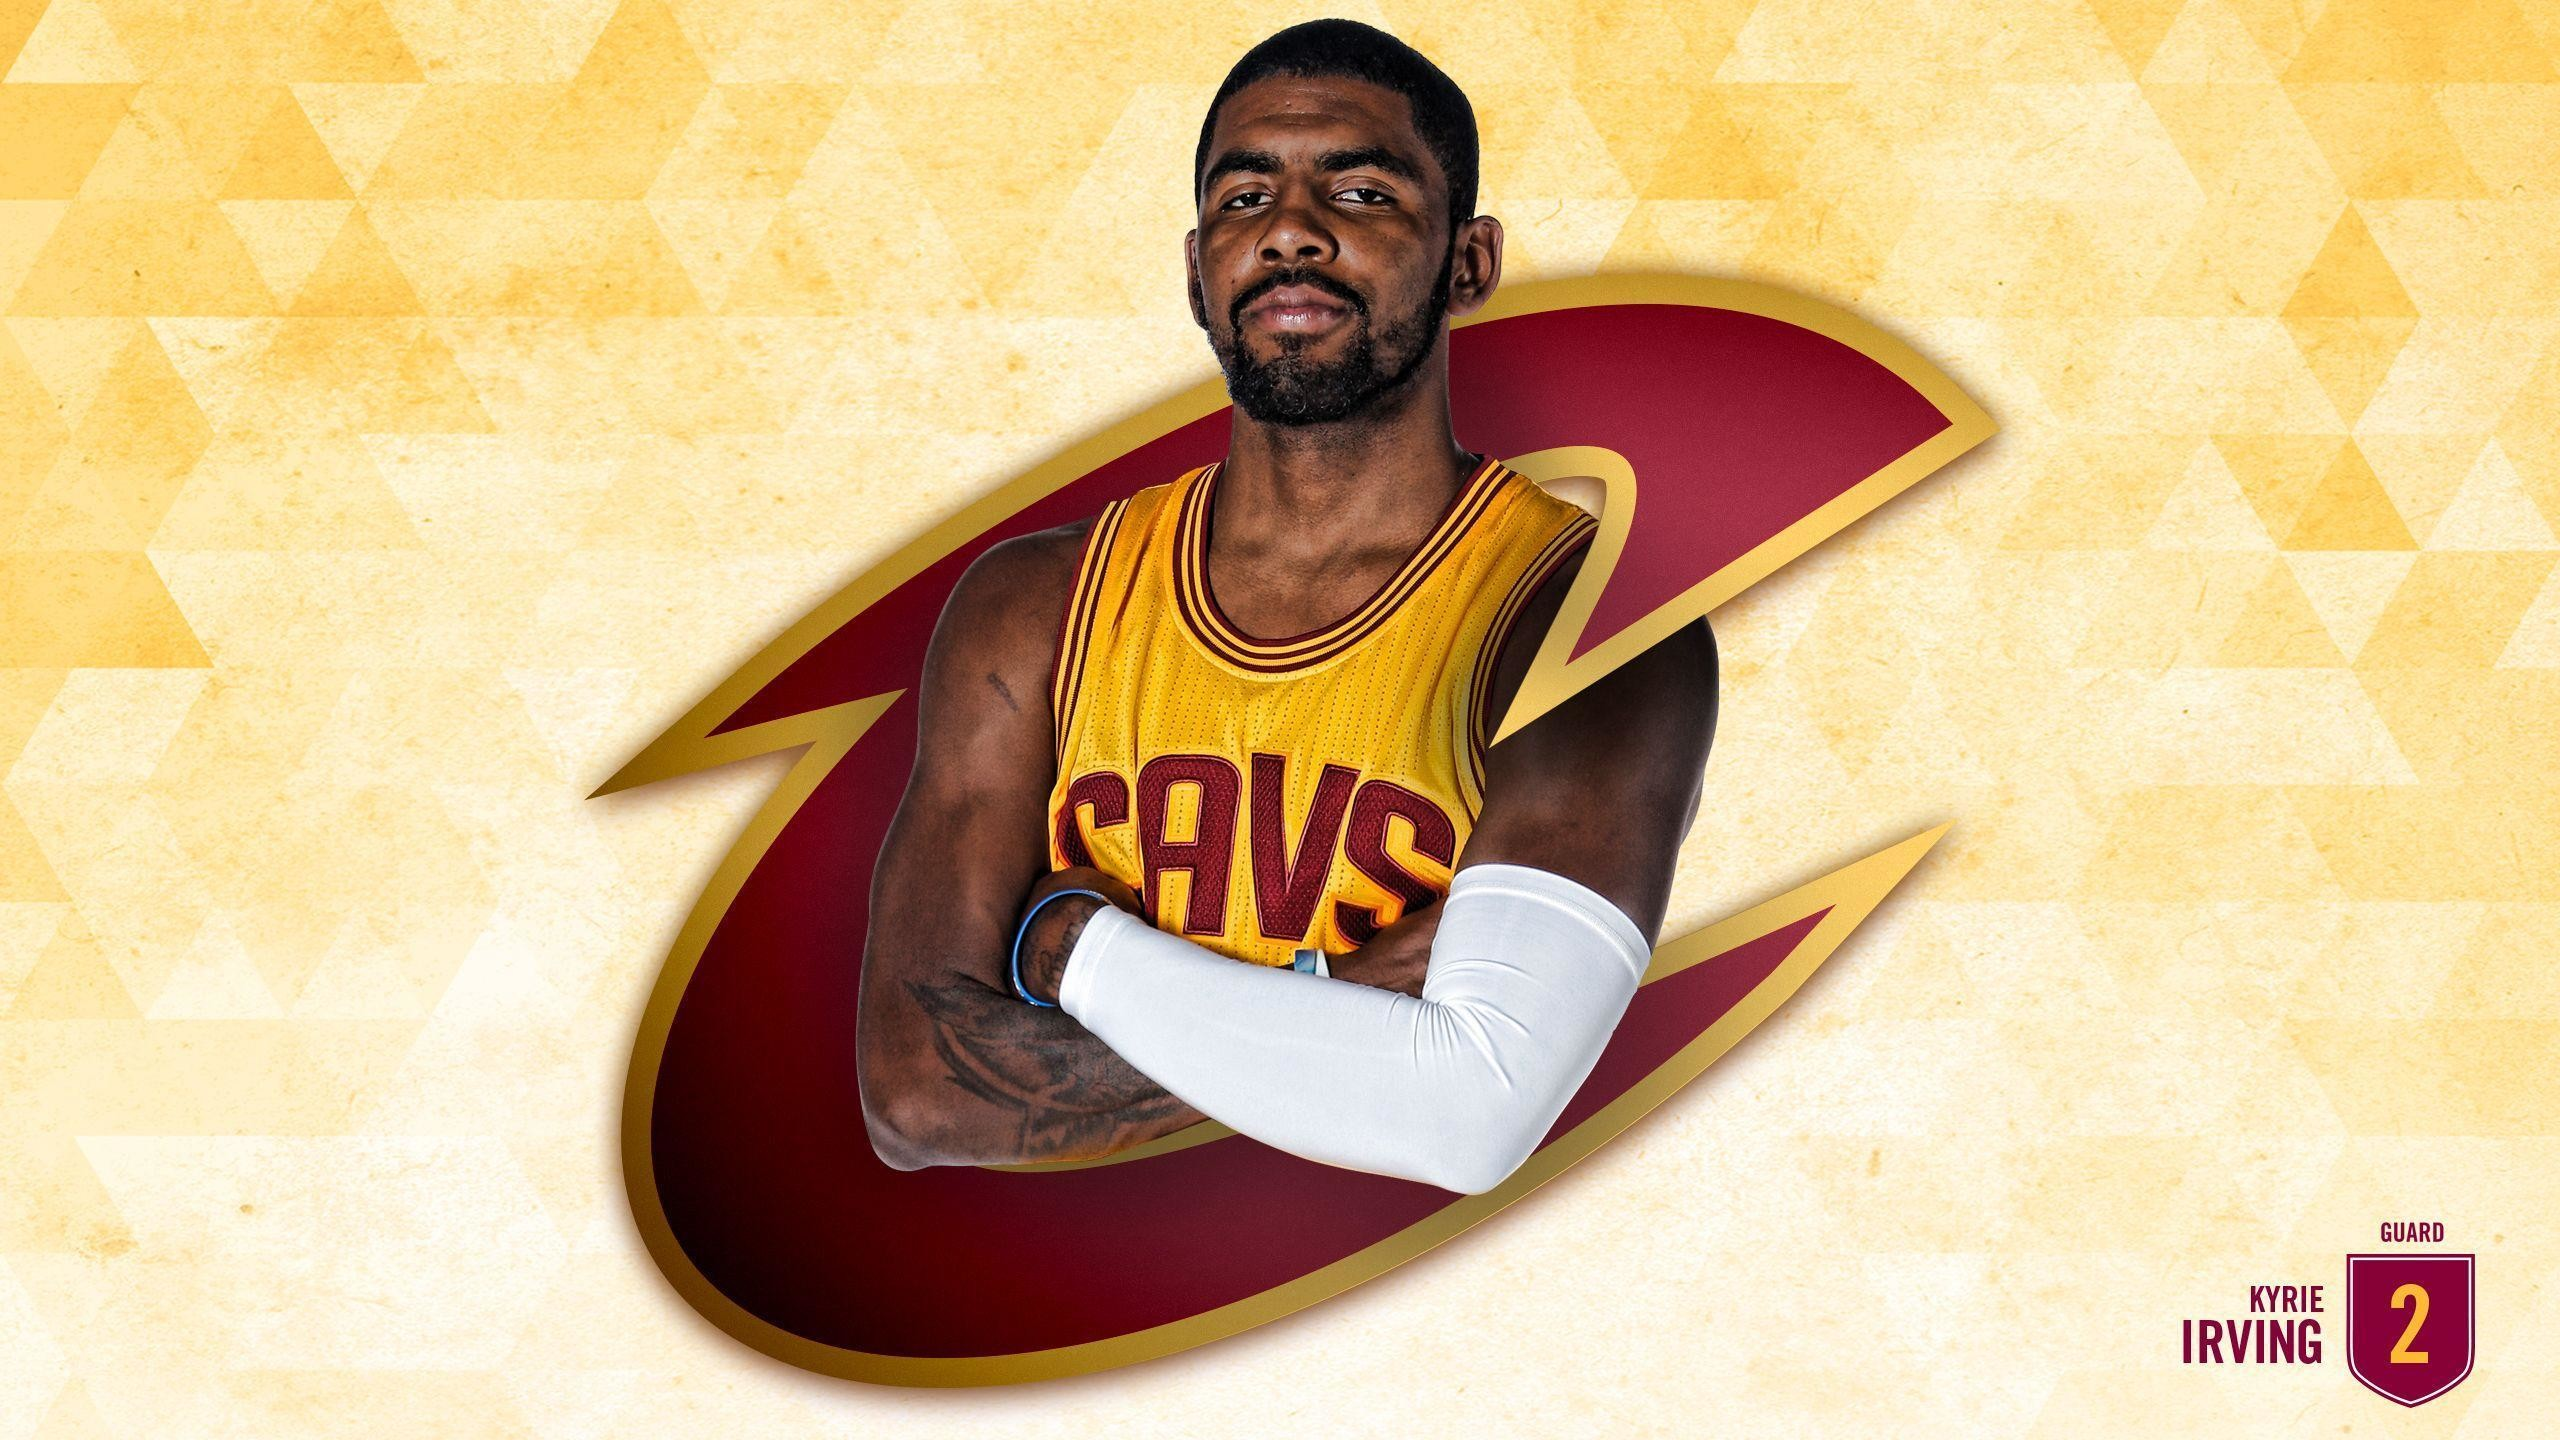 2560x1440 Kyrie Irving Wallpapers High Resolution and Quality Download